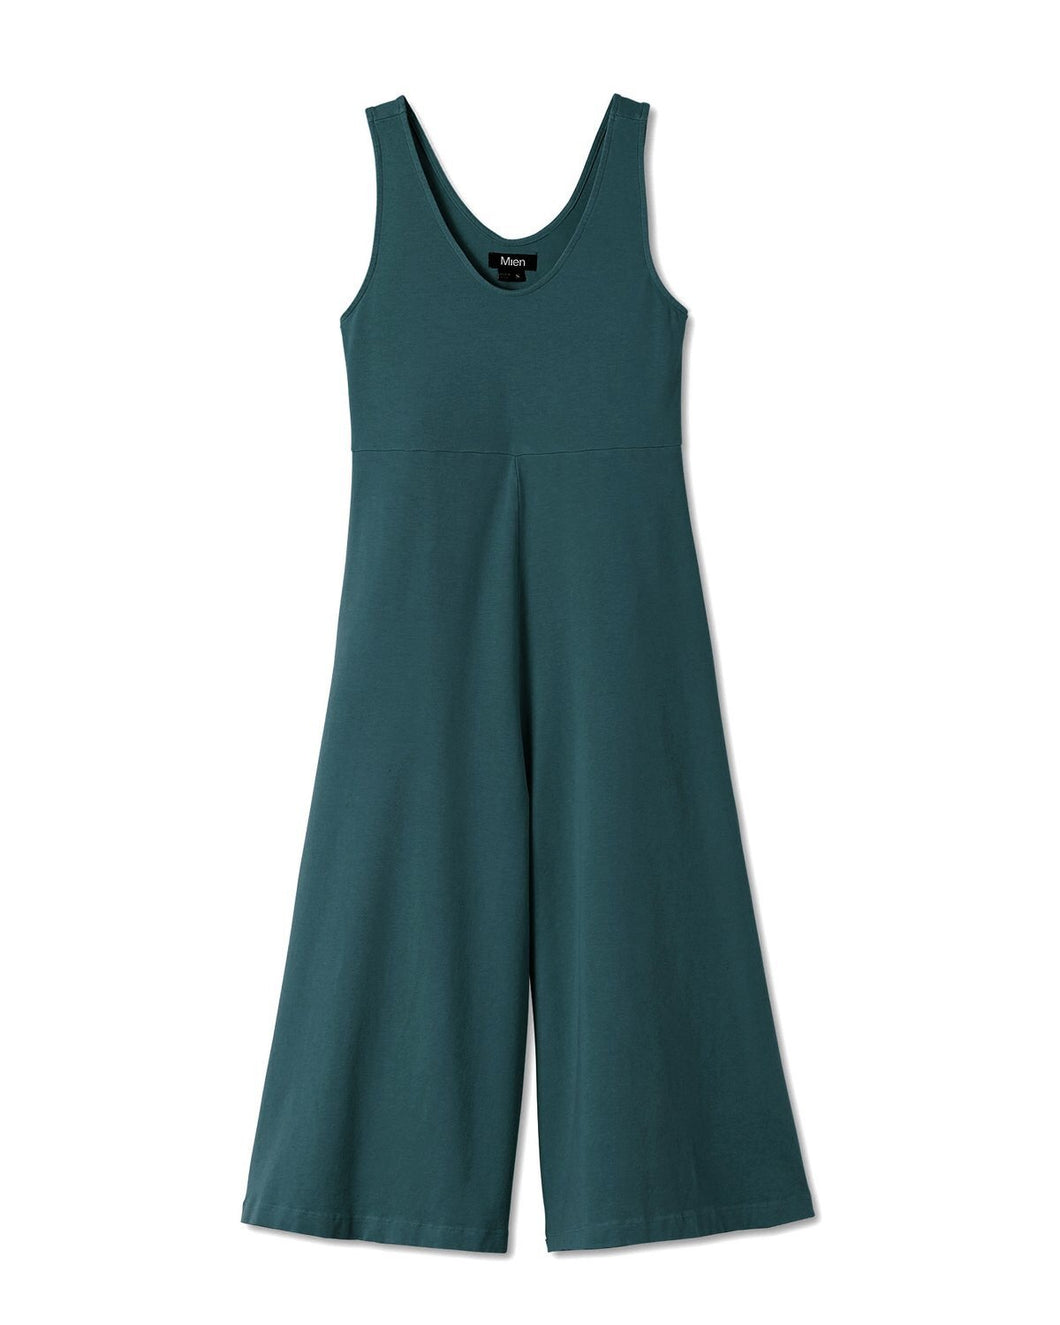 The Woods Mien Studios lakeside jumpsuit romper maternity rich teal turquoise blue